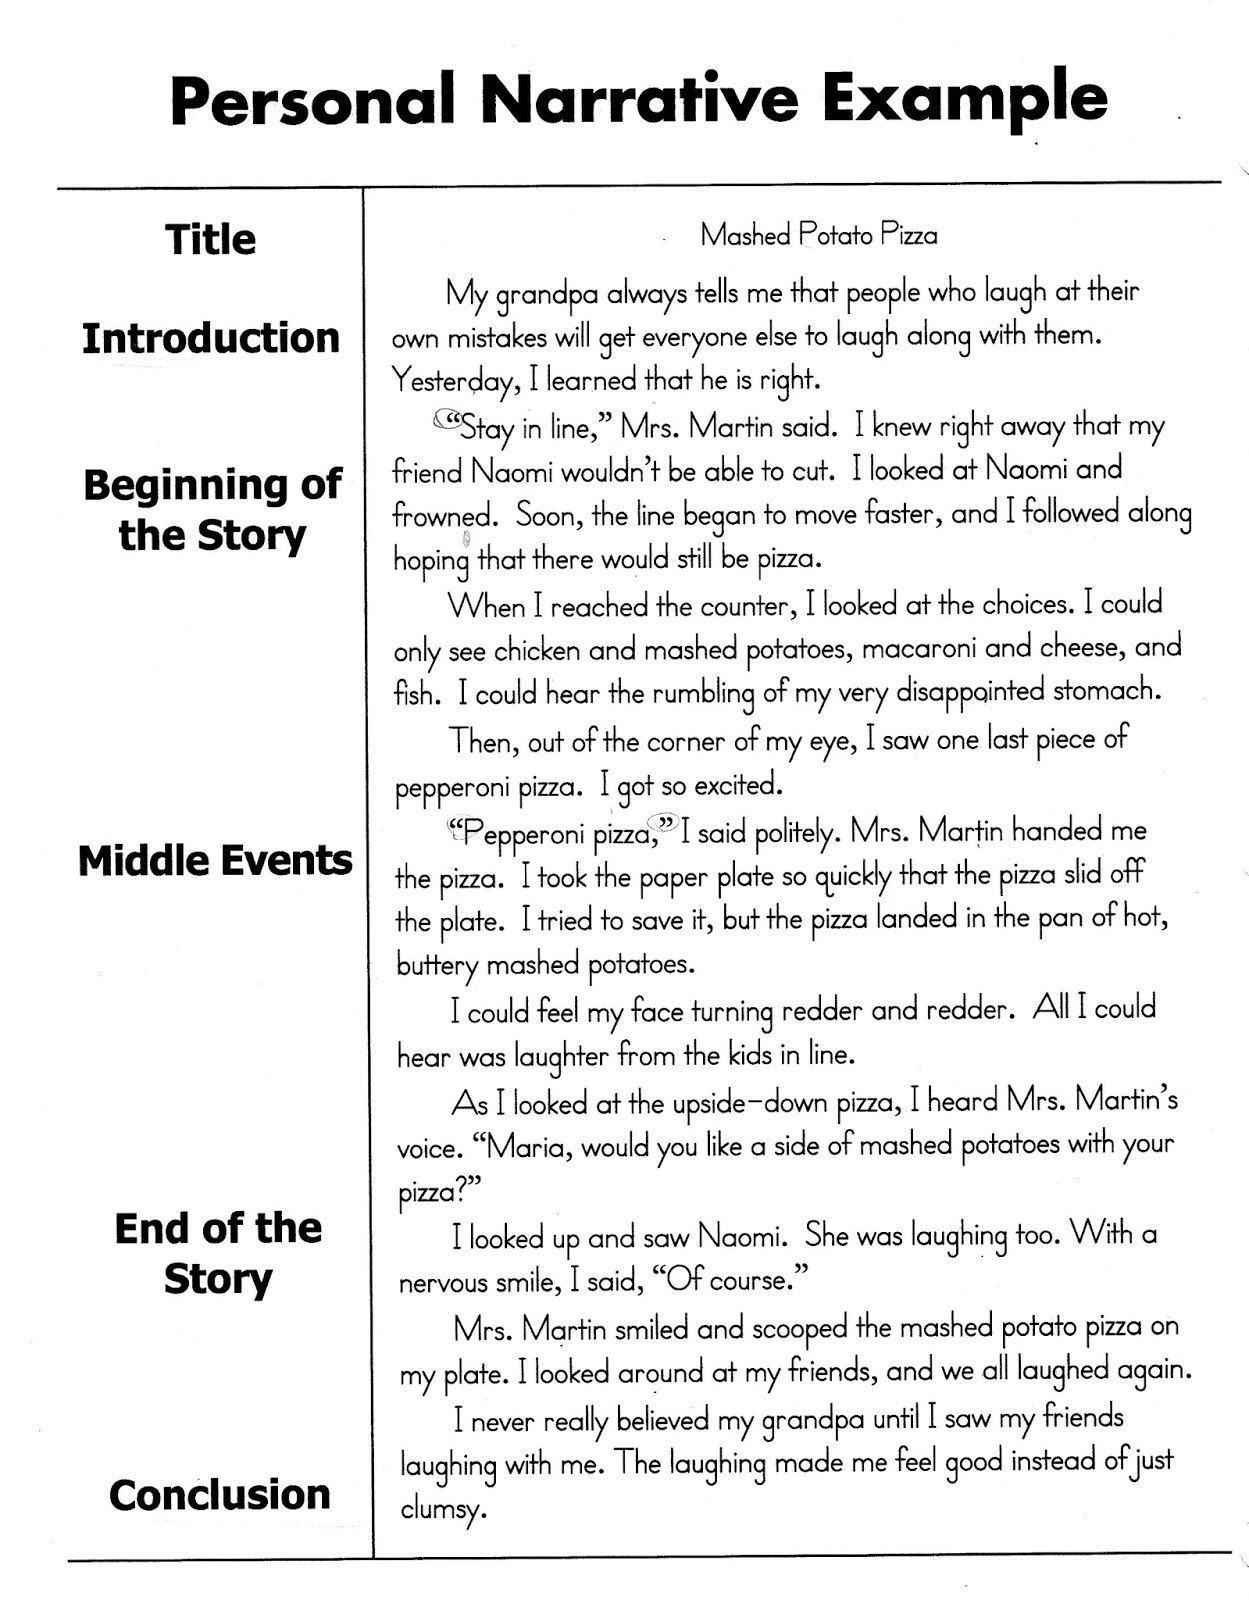 10 points, English teachers,what do you think of this introduction to an essay ?